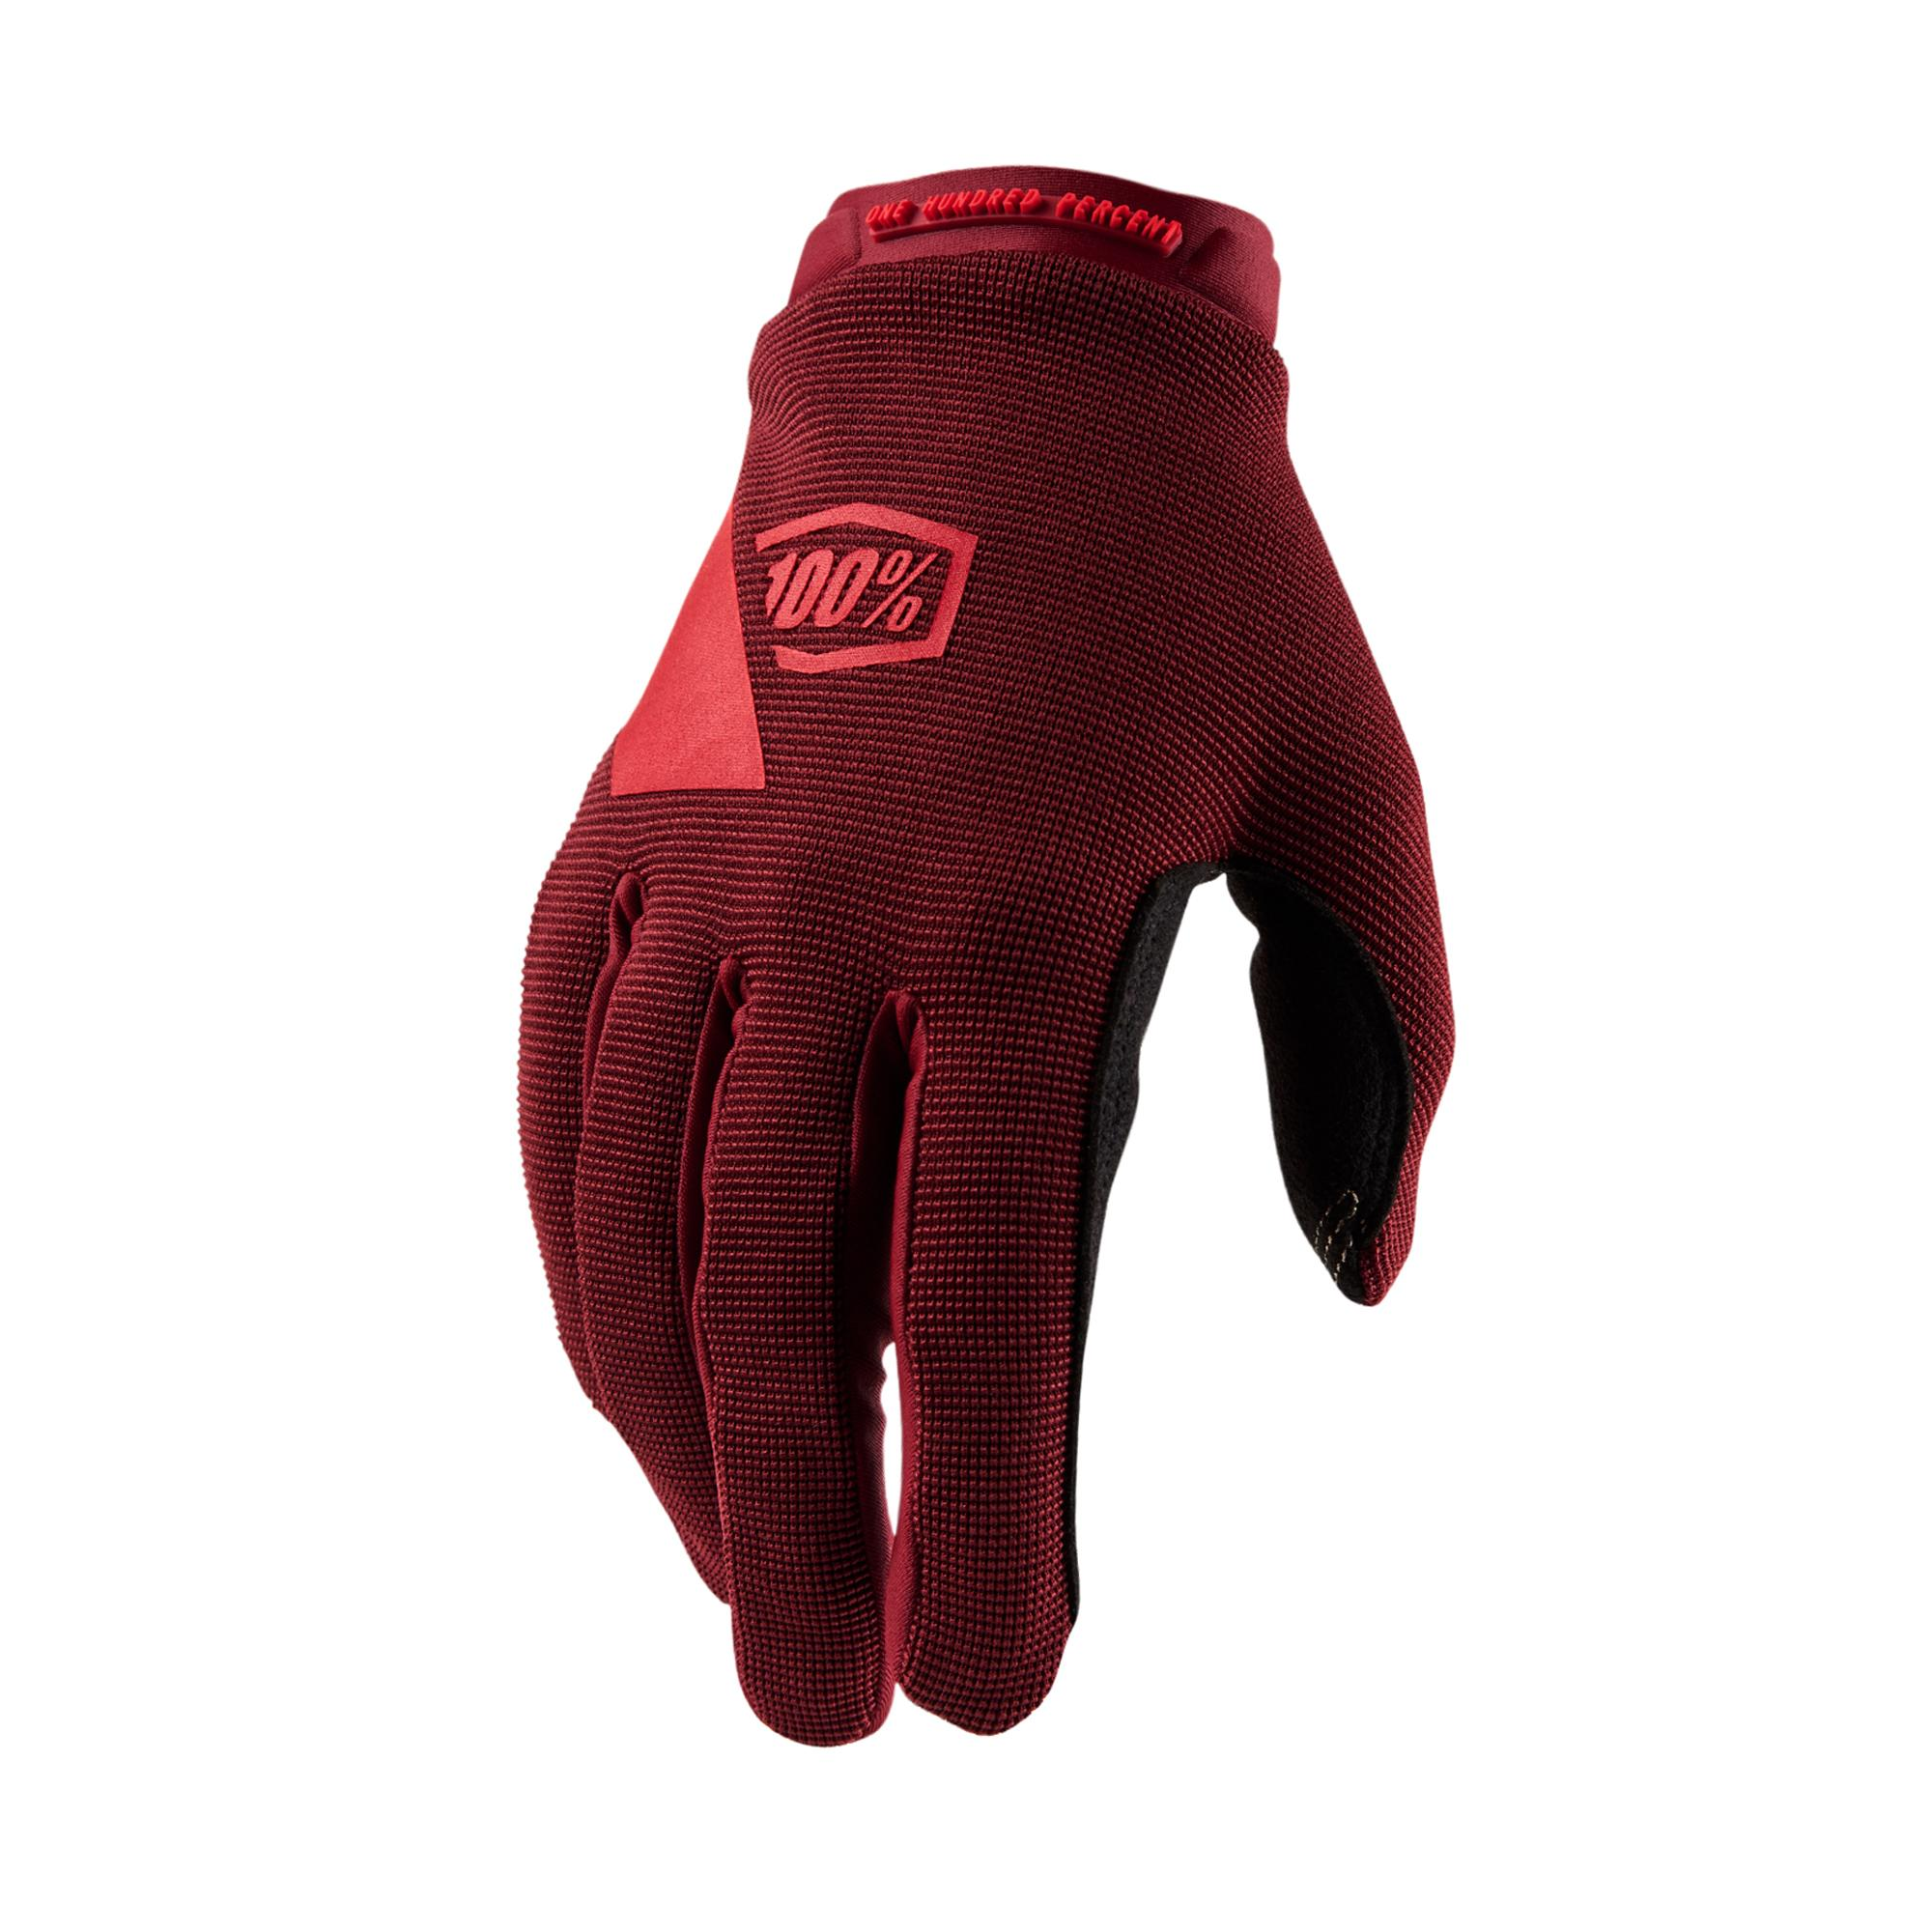 RIDECAMP Womens Glove Brick -